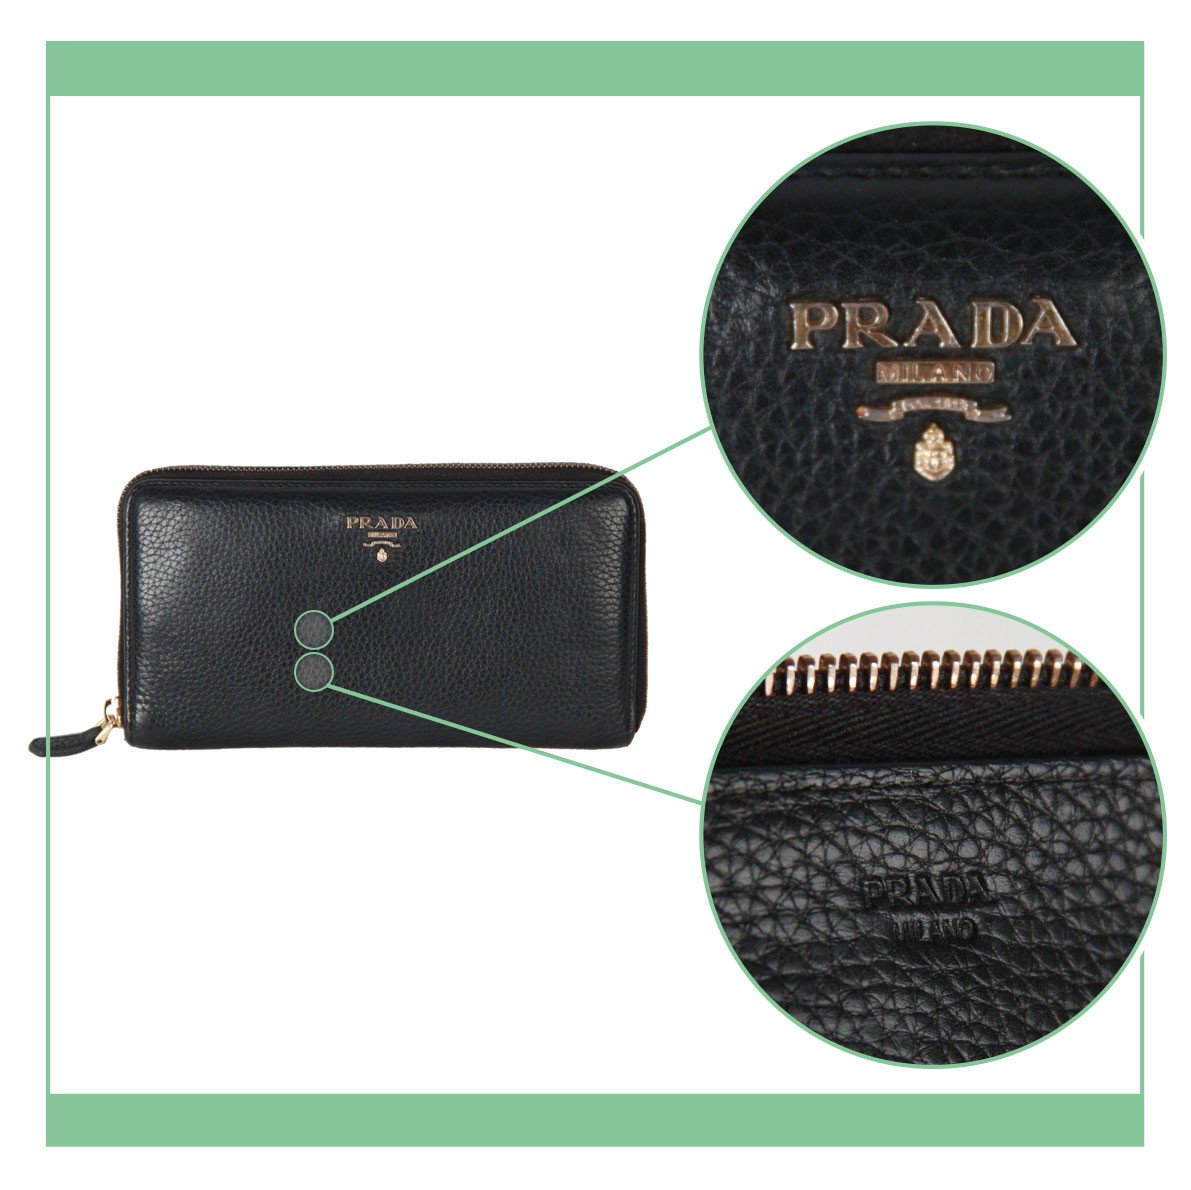 4a2e13ab4a66 Check carefully and compare logos and fonts with the images we provide, and  the ones you can see from our Prada selection. Some models will have the  logo ...